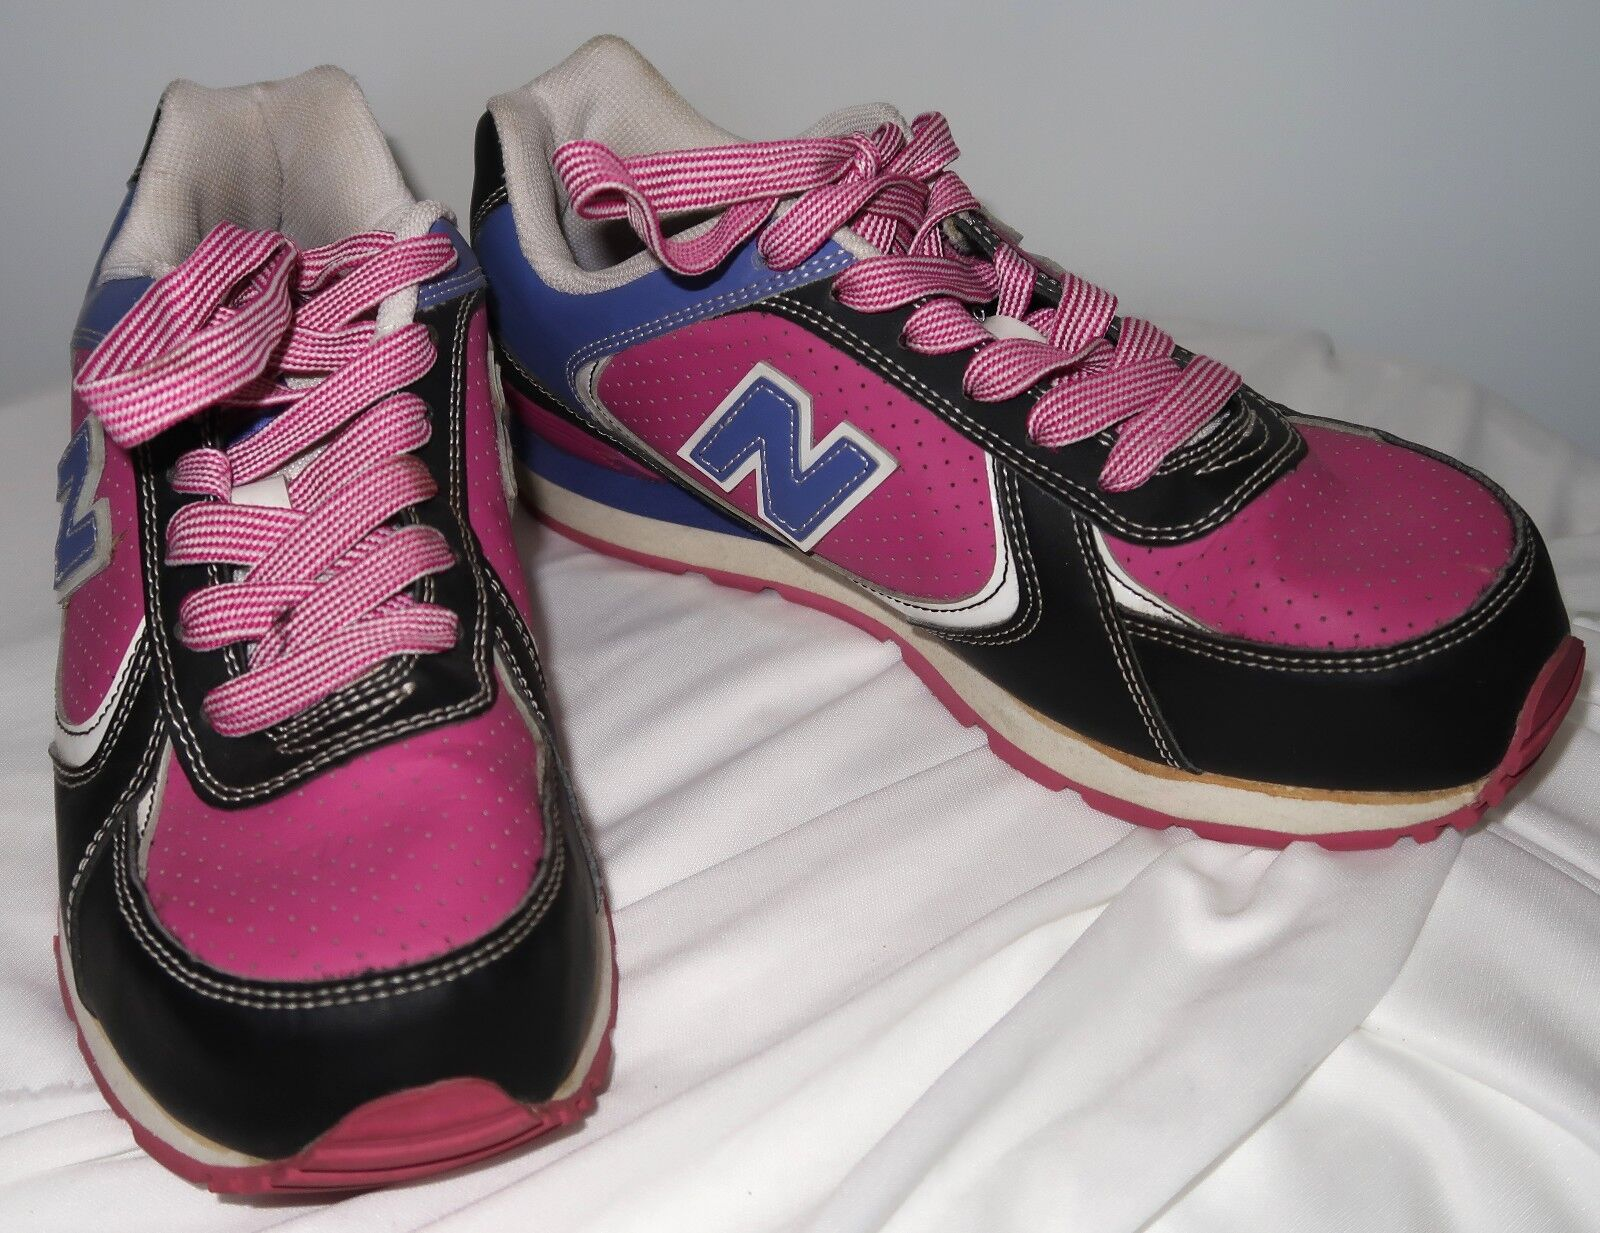 VIntage Looking New Balance 525 Womens Size 6 Pink & Purple shoes colorful